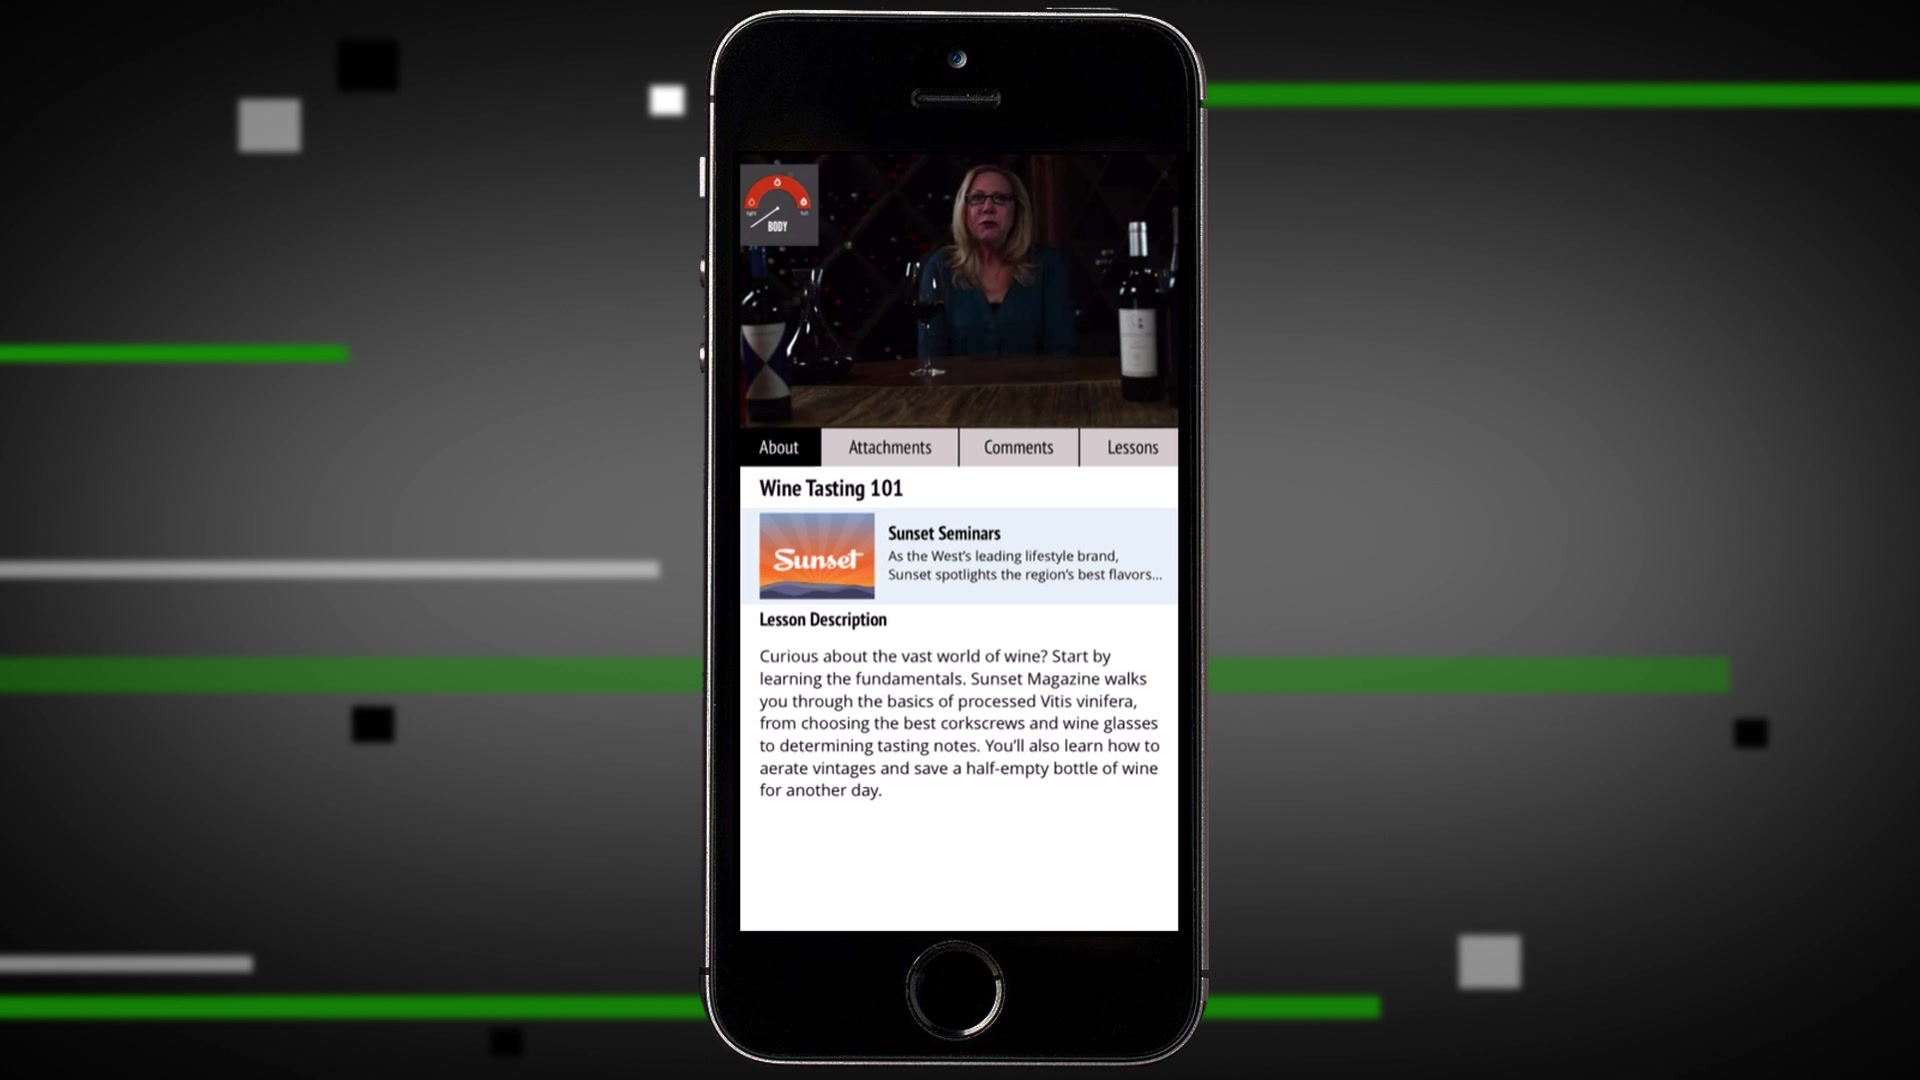 Learning Software Curious Releases First App On iPhone